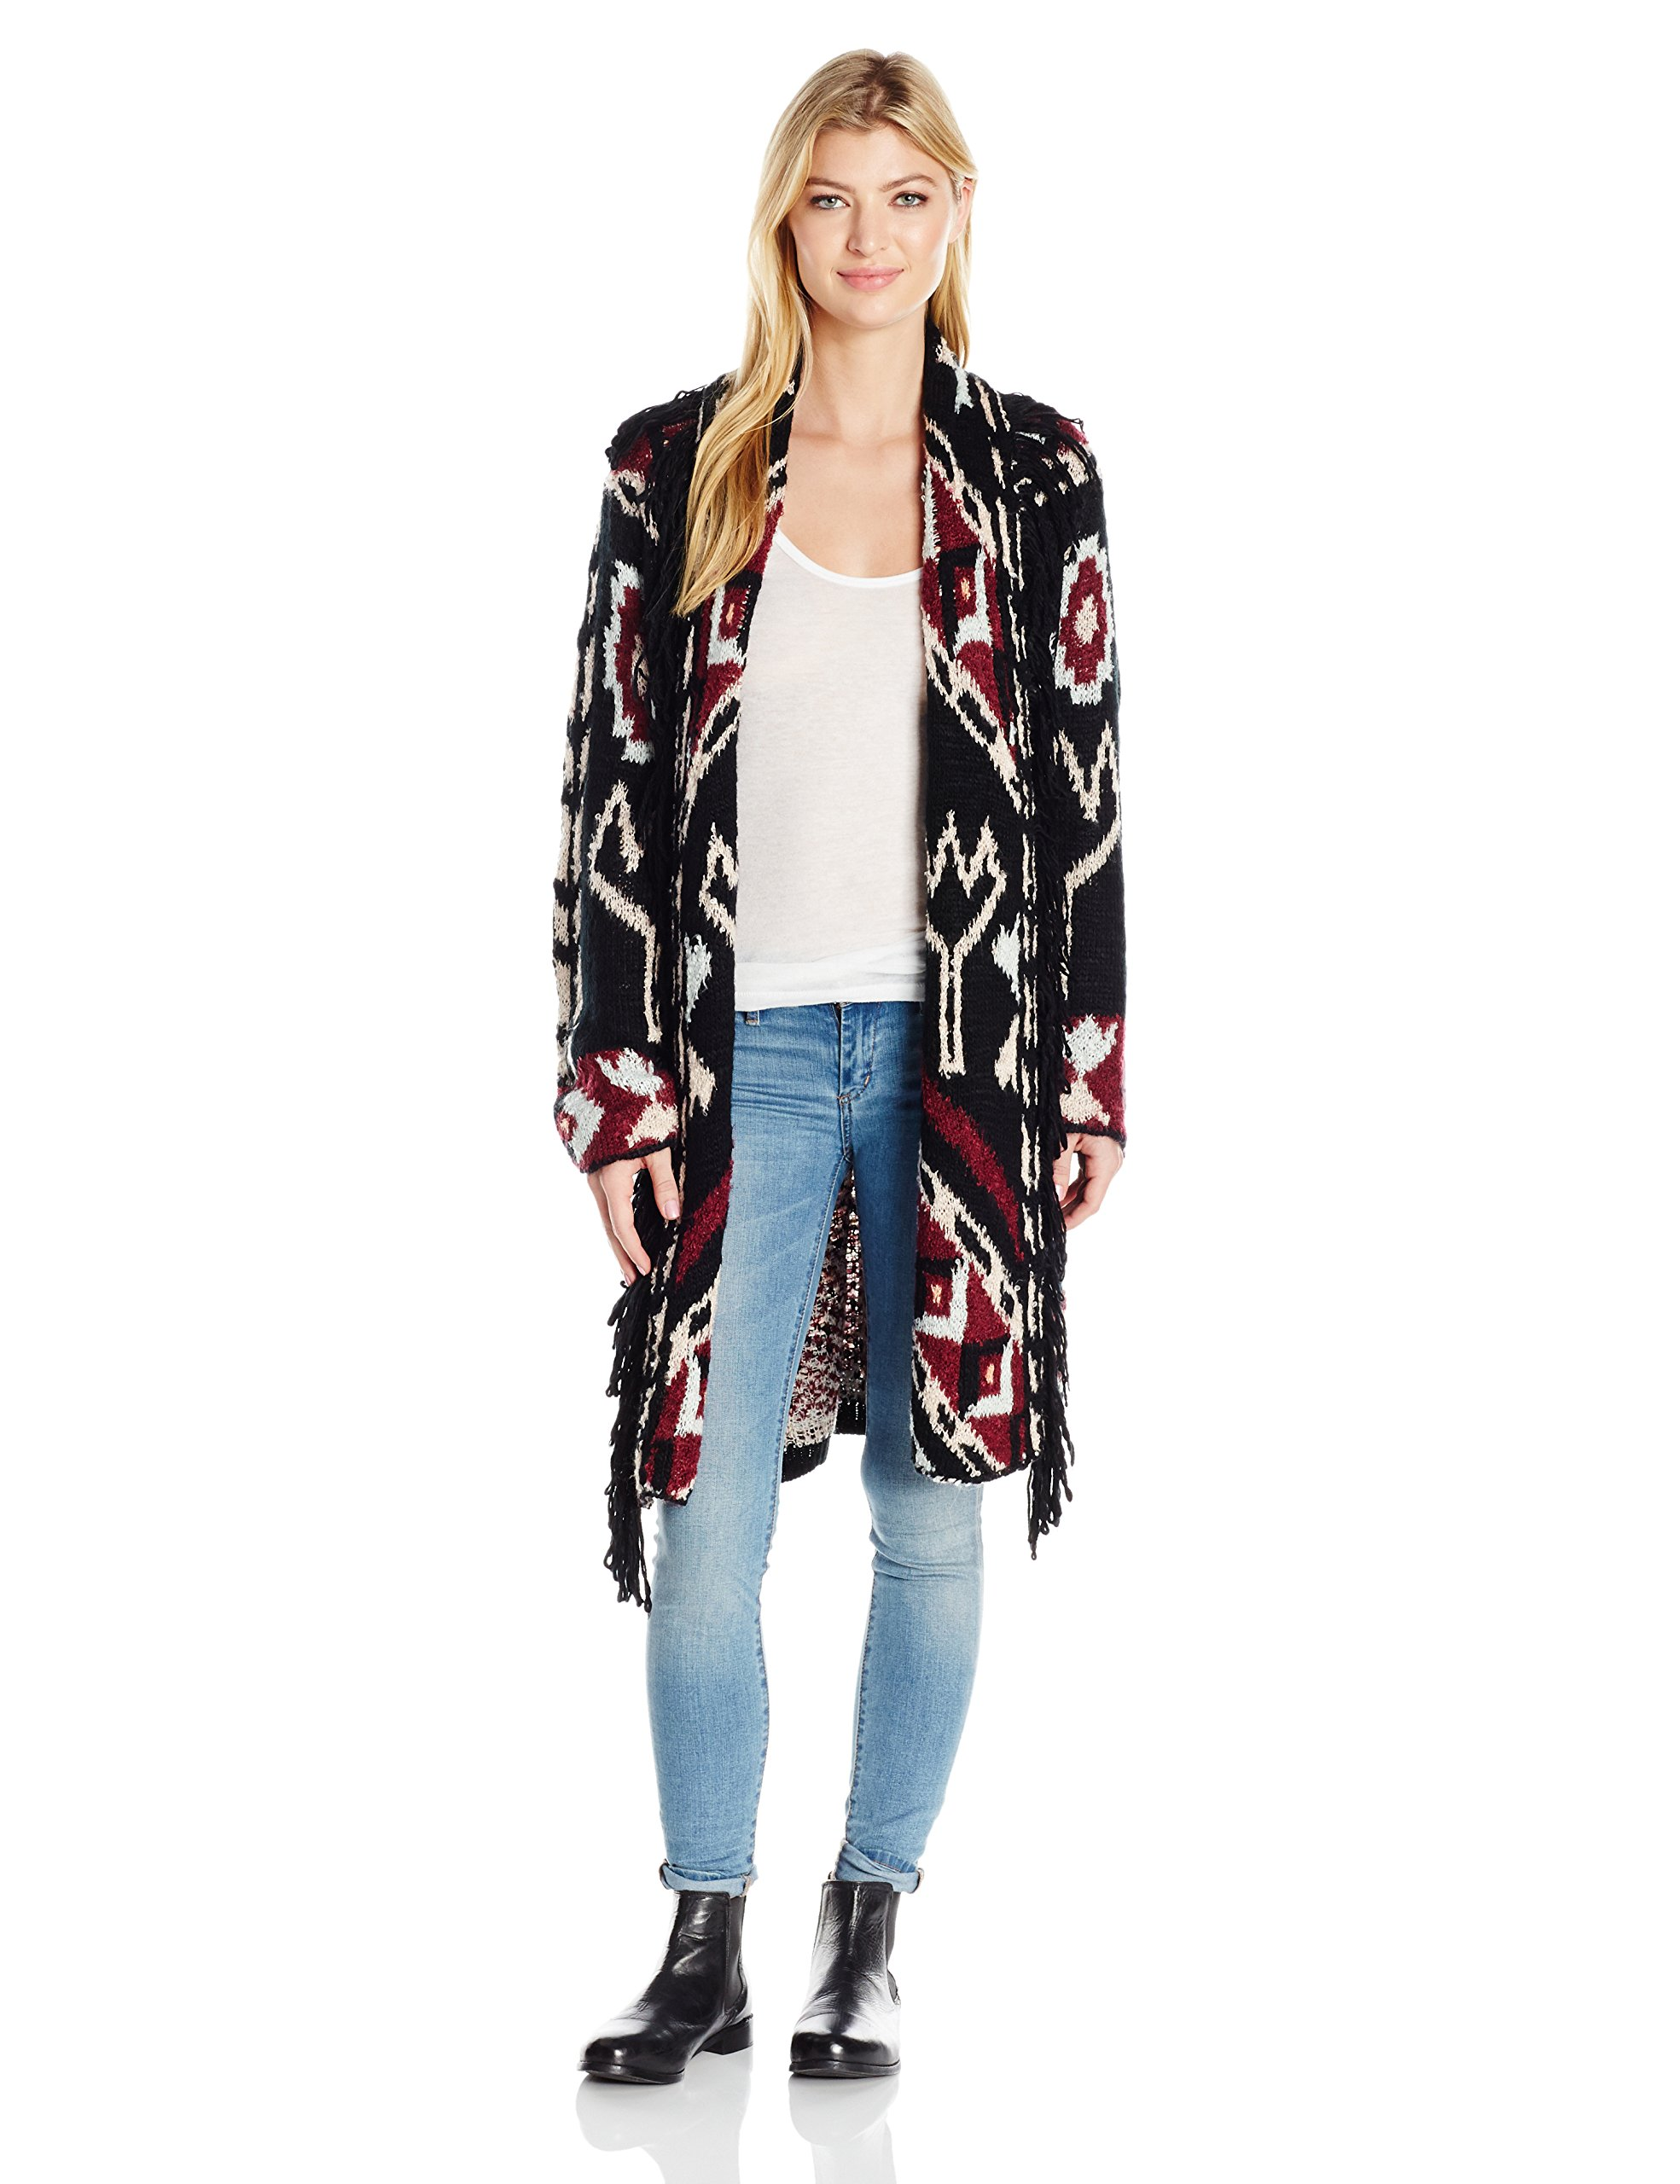 Somedays Lovin Women's Strange Fascination Printed Sweater Cardigan, Multi, X-Small/Small by Somedays Lovin